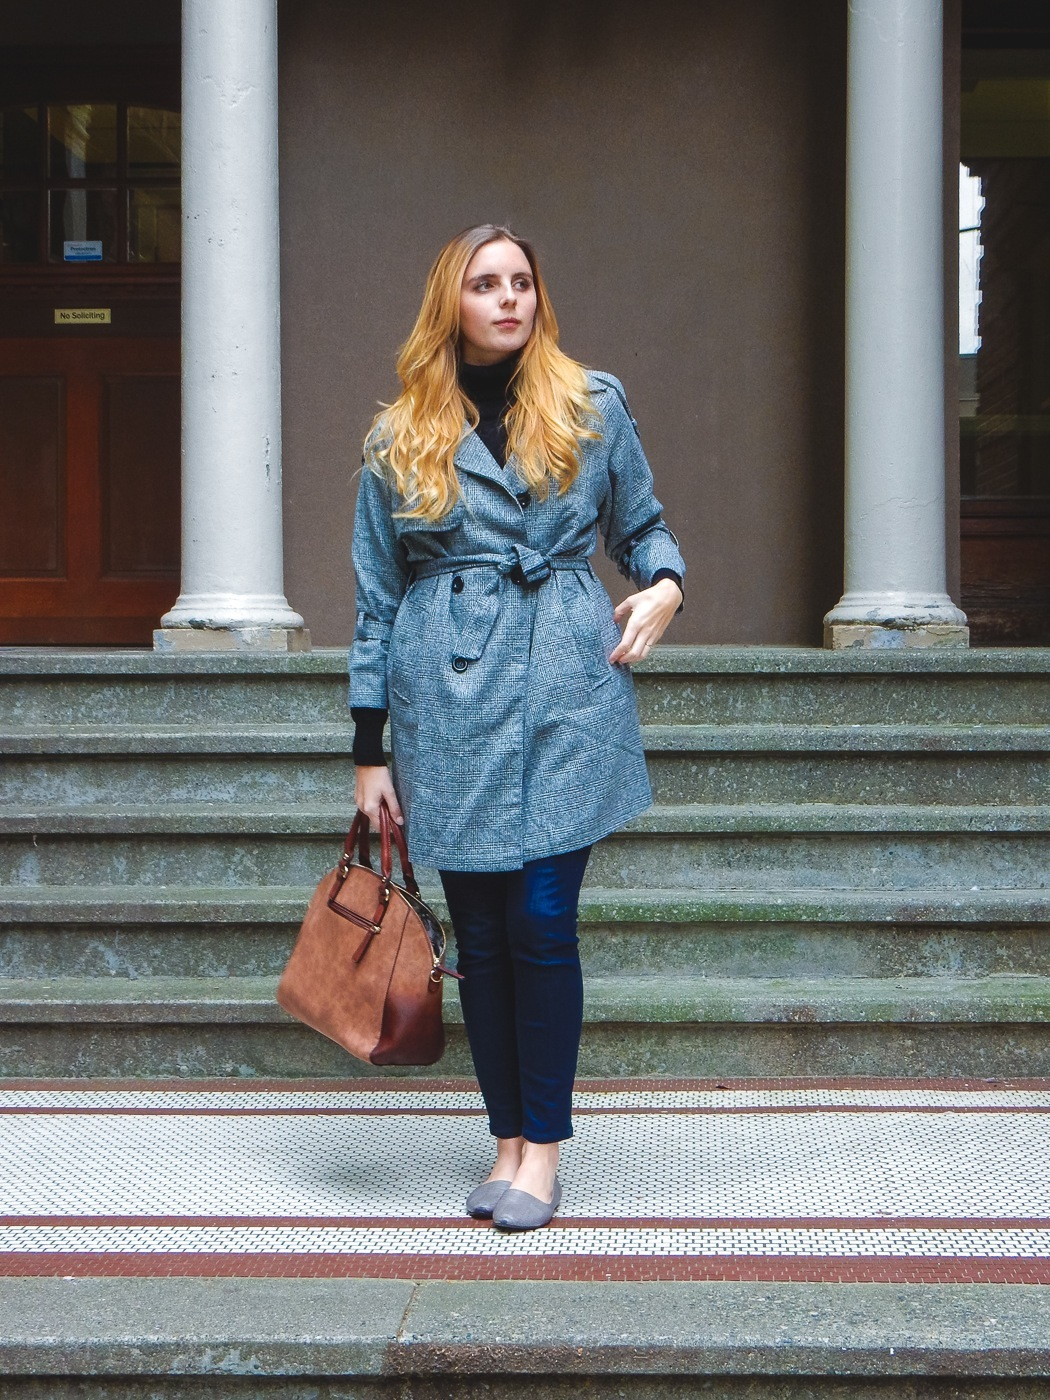 the urban umbrella style blog, vancouver style blog, vancouver style blogger, vancouver fashion blog, vancouver lifestyle blog, vancouver health blog, vancouver fitness blog, vancouver travel blog, canadian fashion blog, canadian style blog, canadian lifestyle blog, canadian health blog, canadian fitness blog, canadian travel blog, bree aylwin, how to style a trench coat, how to look stylish in a trench coat, lookbook store trench coat, lookbook store review, how to stop procrastinating, how to not procrastinate, how to work efficiently, how to style loafers, menswear inspired style, best health blogs, best travel blogs, top fashion blogs, top style blogs, top lifestyle blogs, top fitness blogs, top health blogs, top travel blogs